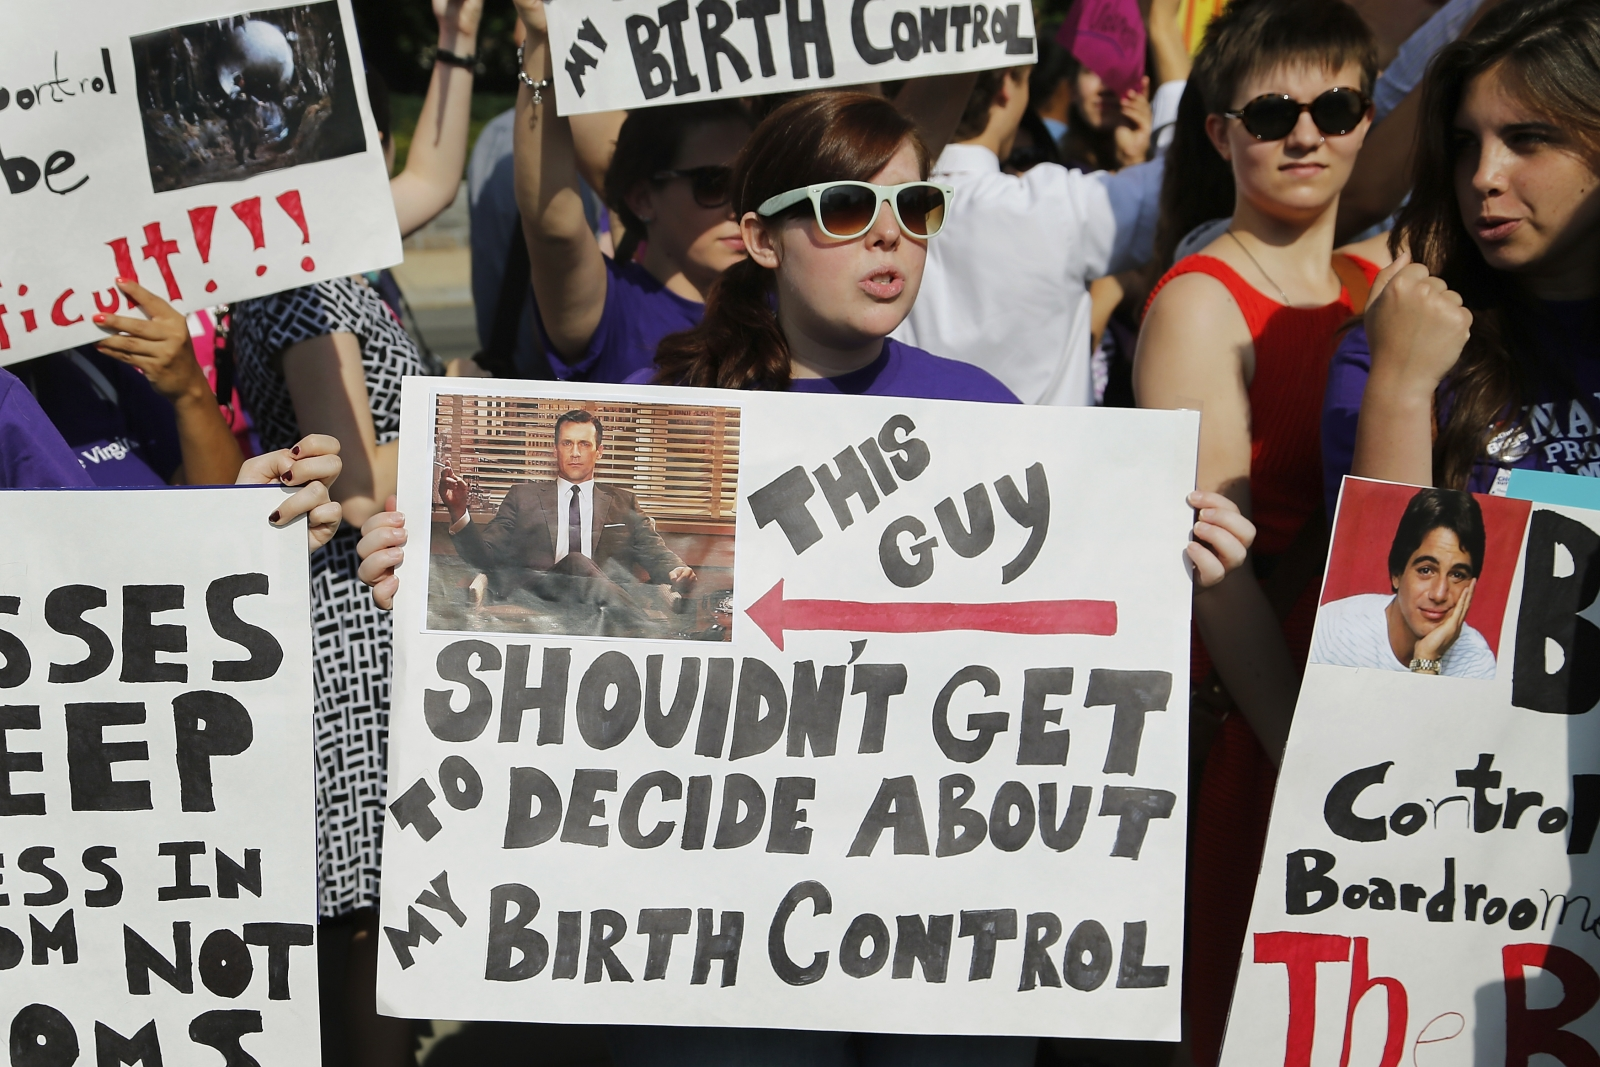 Pro-abortion and birth control protesters demonstrate outside the U.S. Supreme Court in Washington